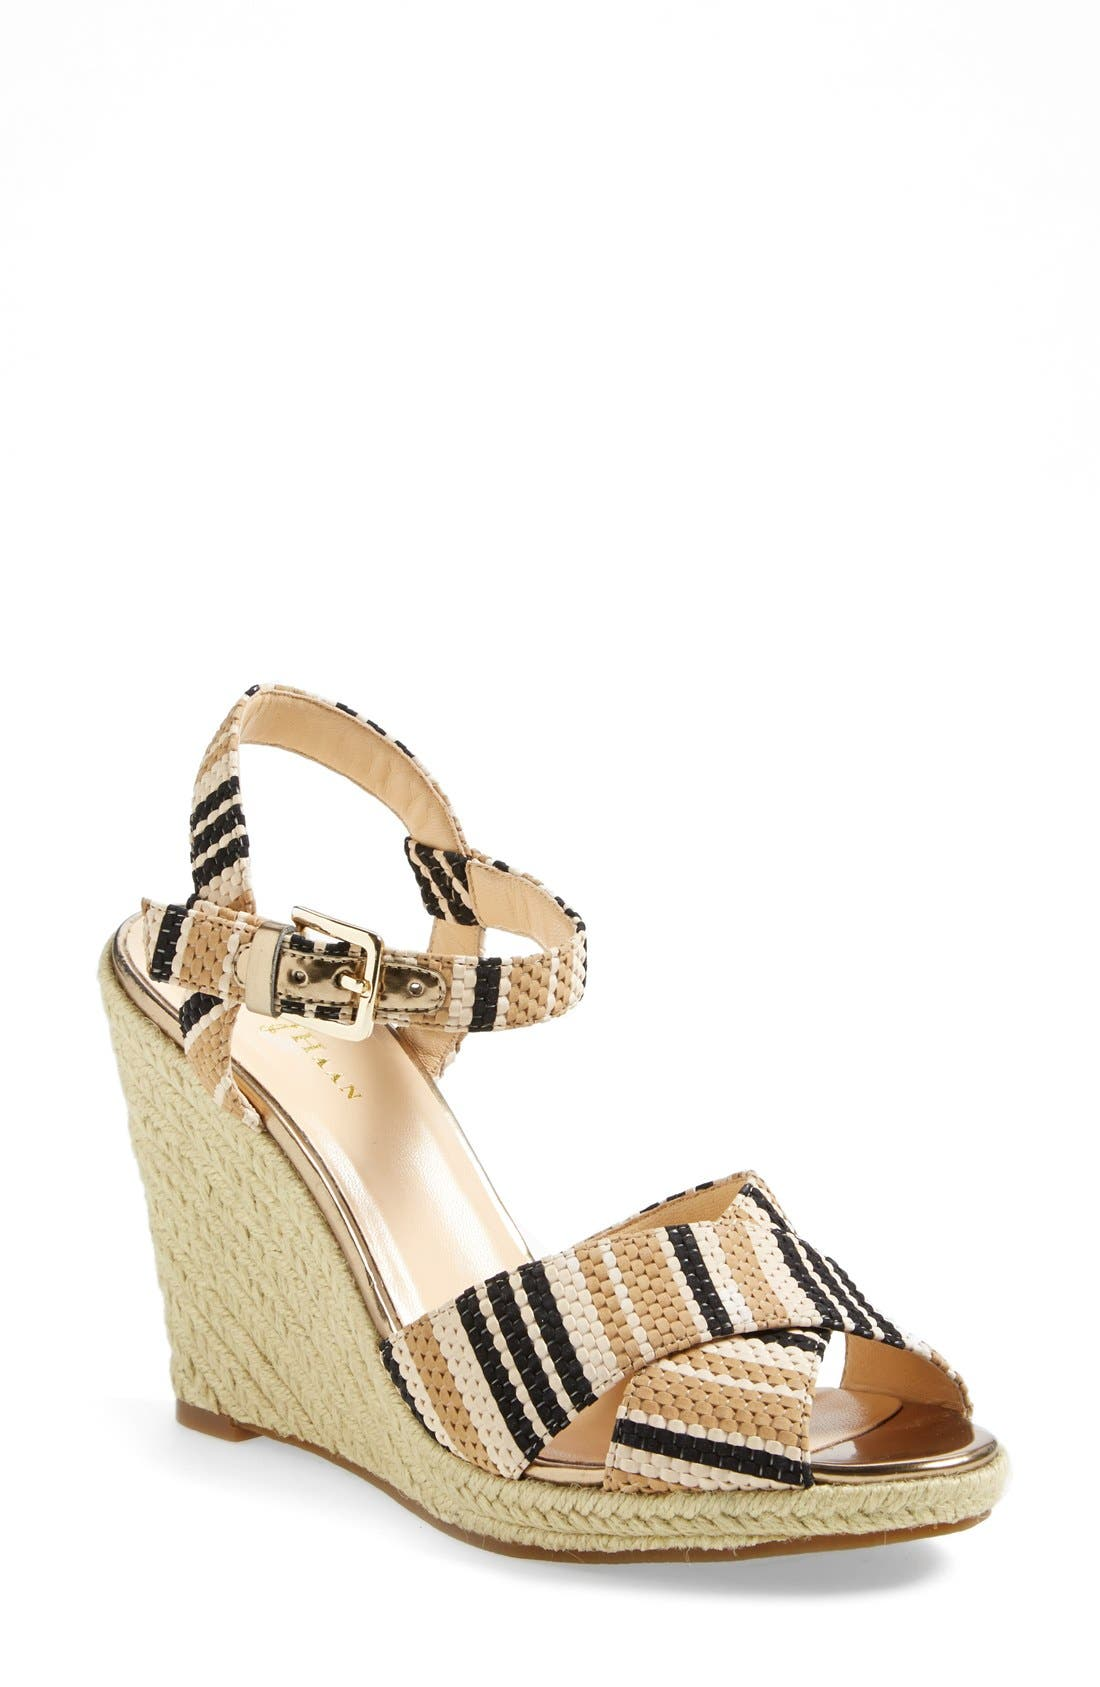 Alternate Image 1 Selected - Cole Haan 'Hart' Wedge Platform Sandal